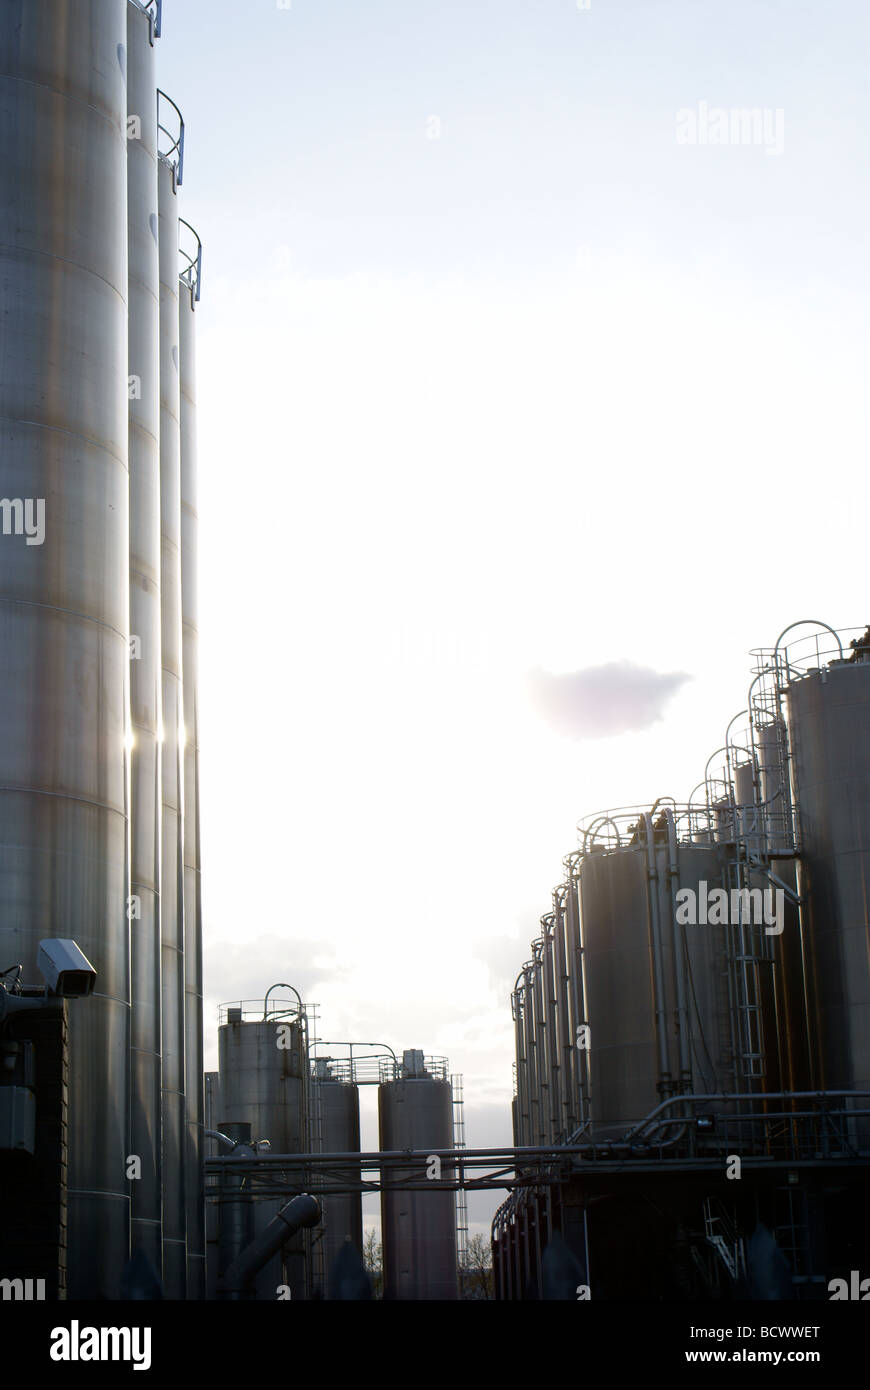 Chemical works - Stock Image